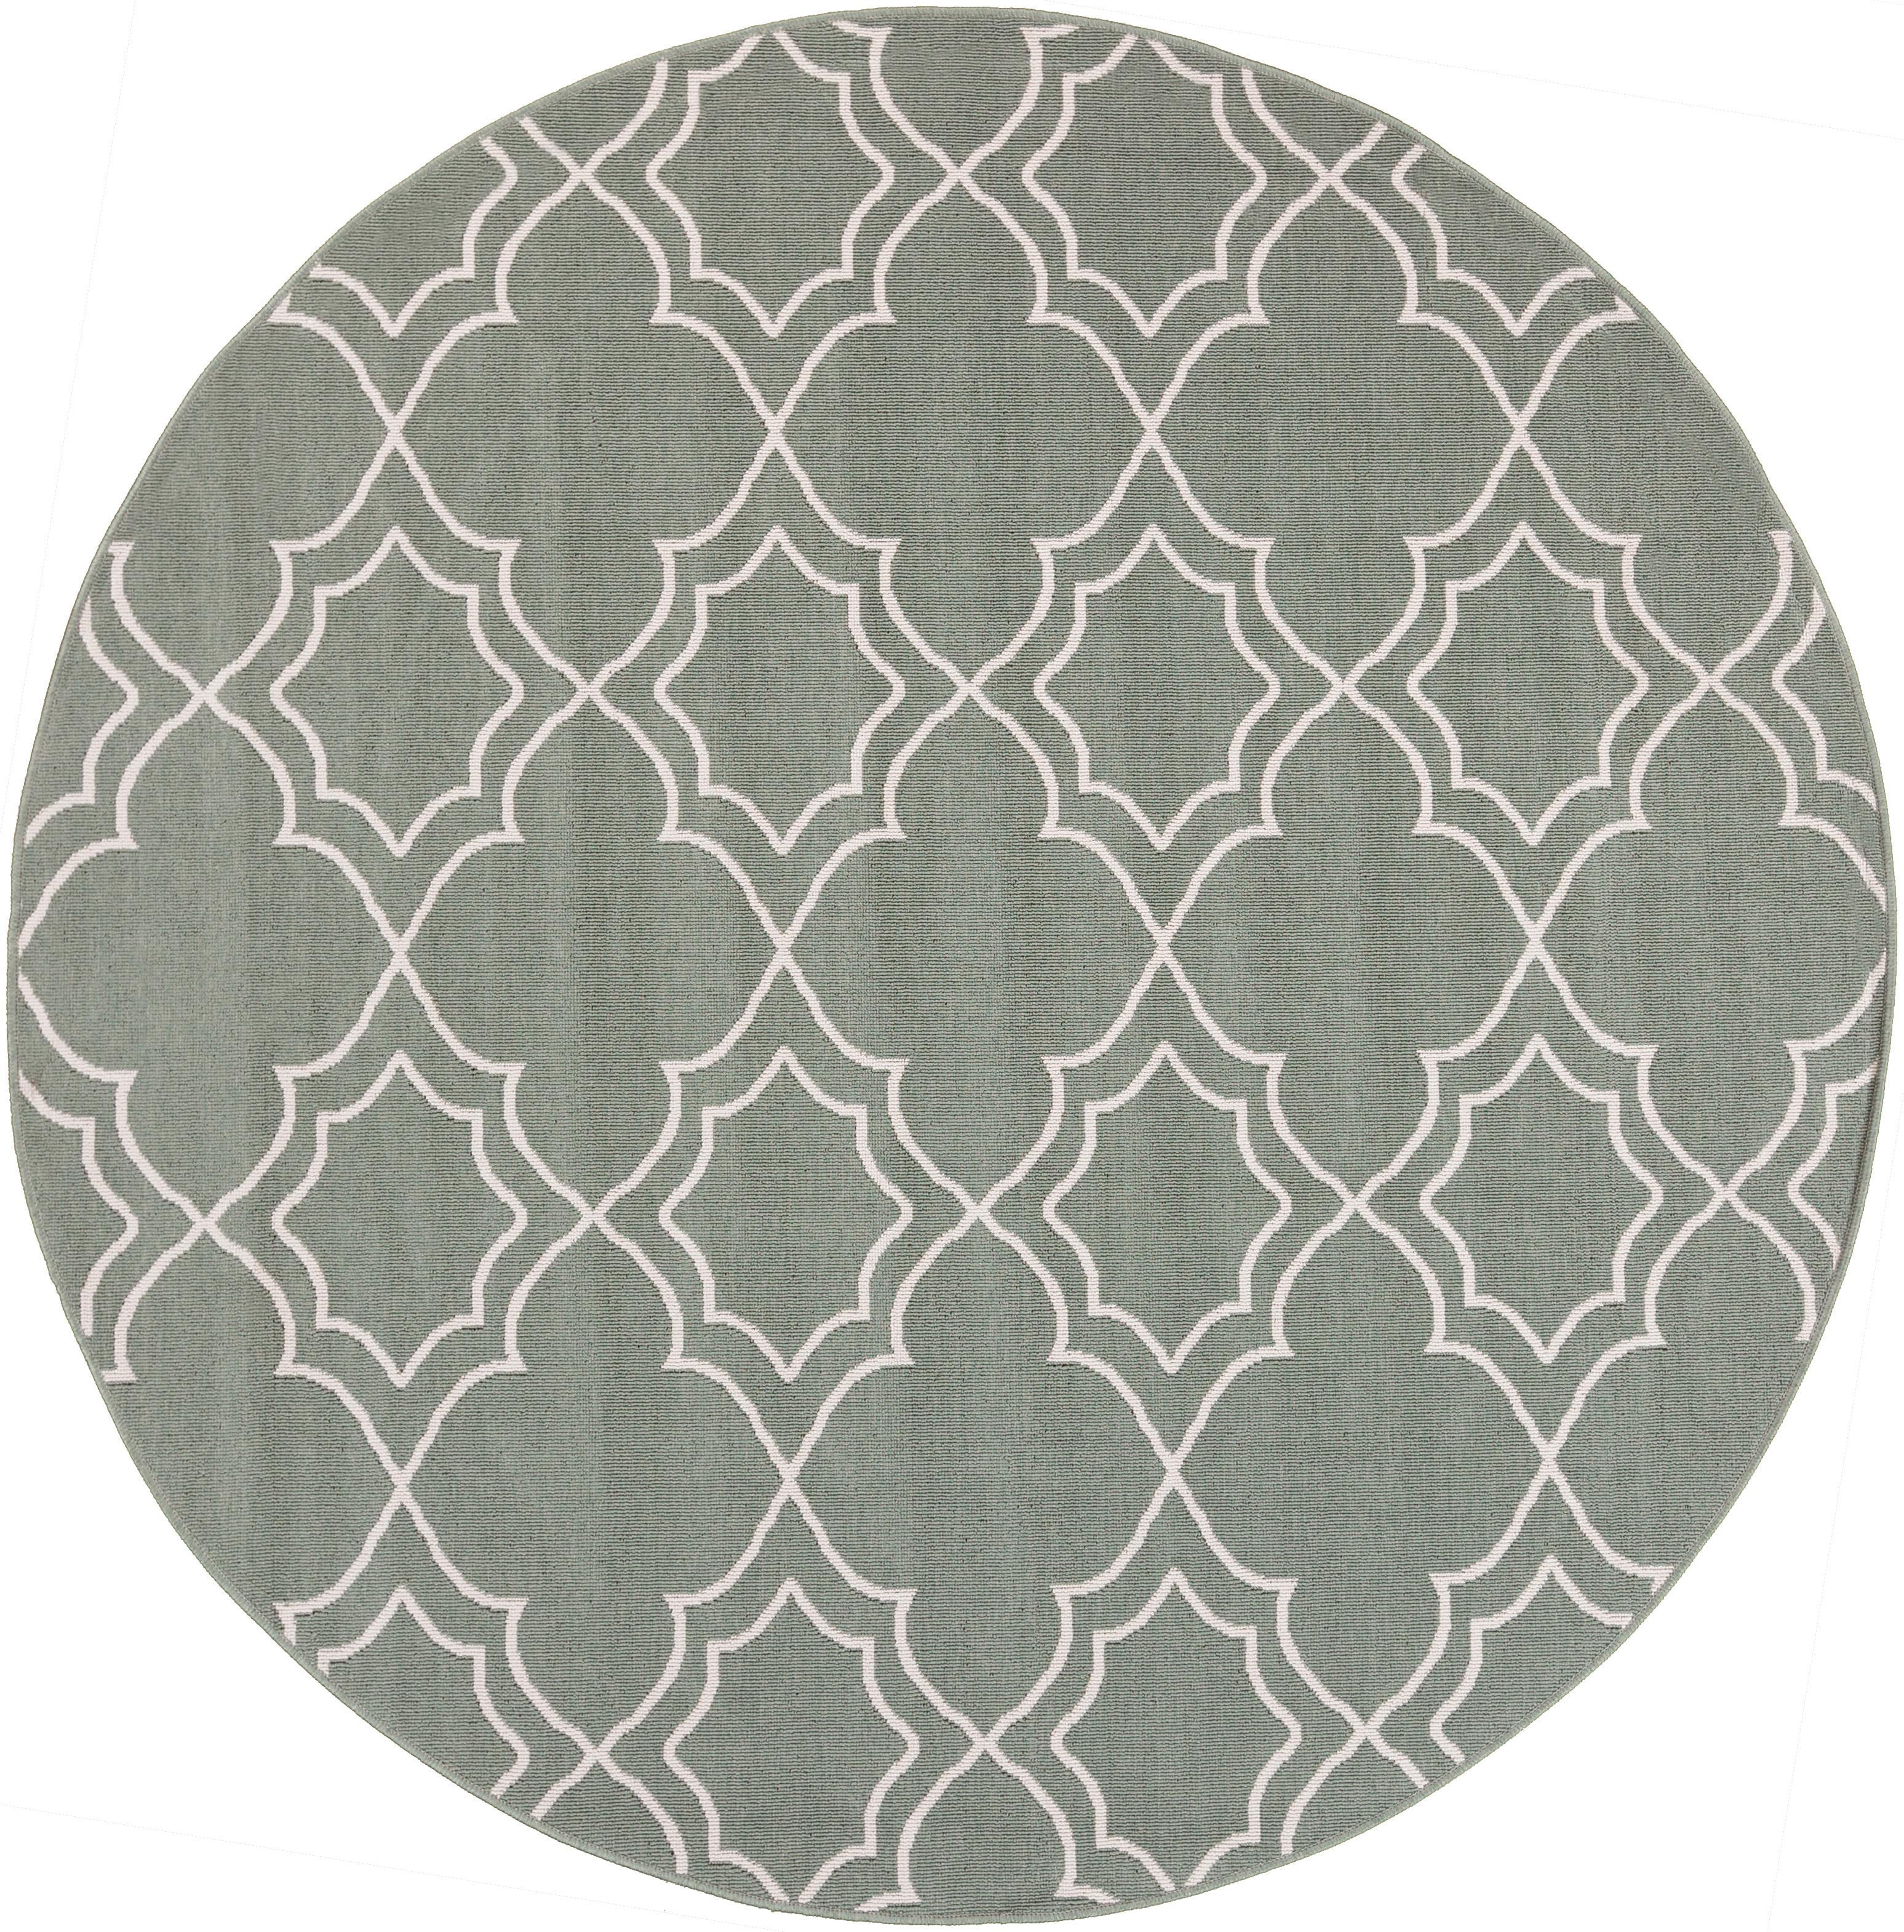 "Alfresco 5'3"" Round by Surya at Suburban Furniture"